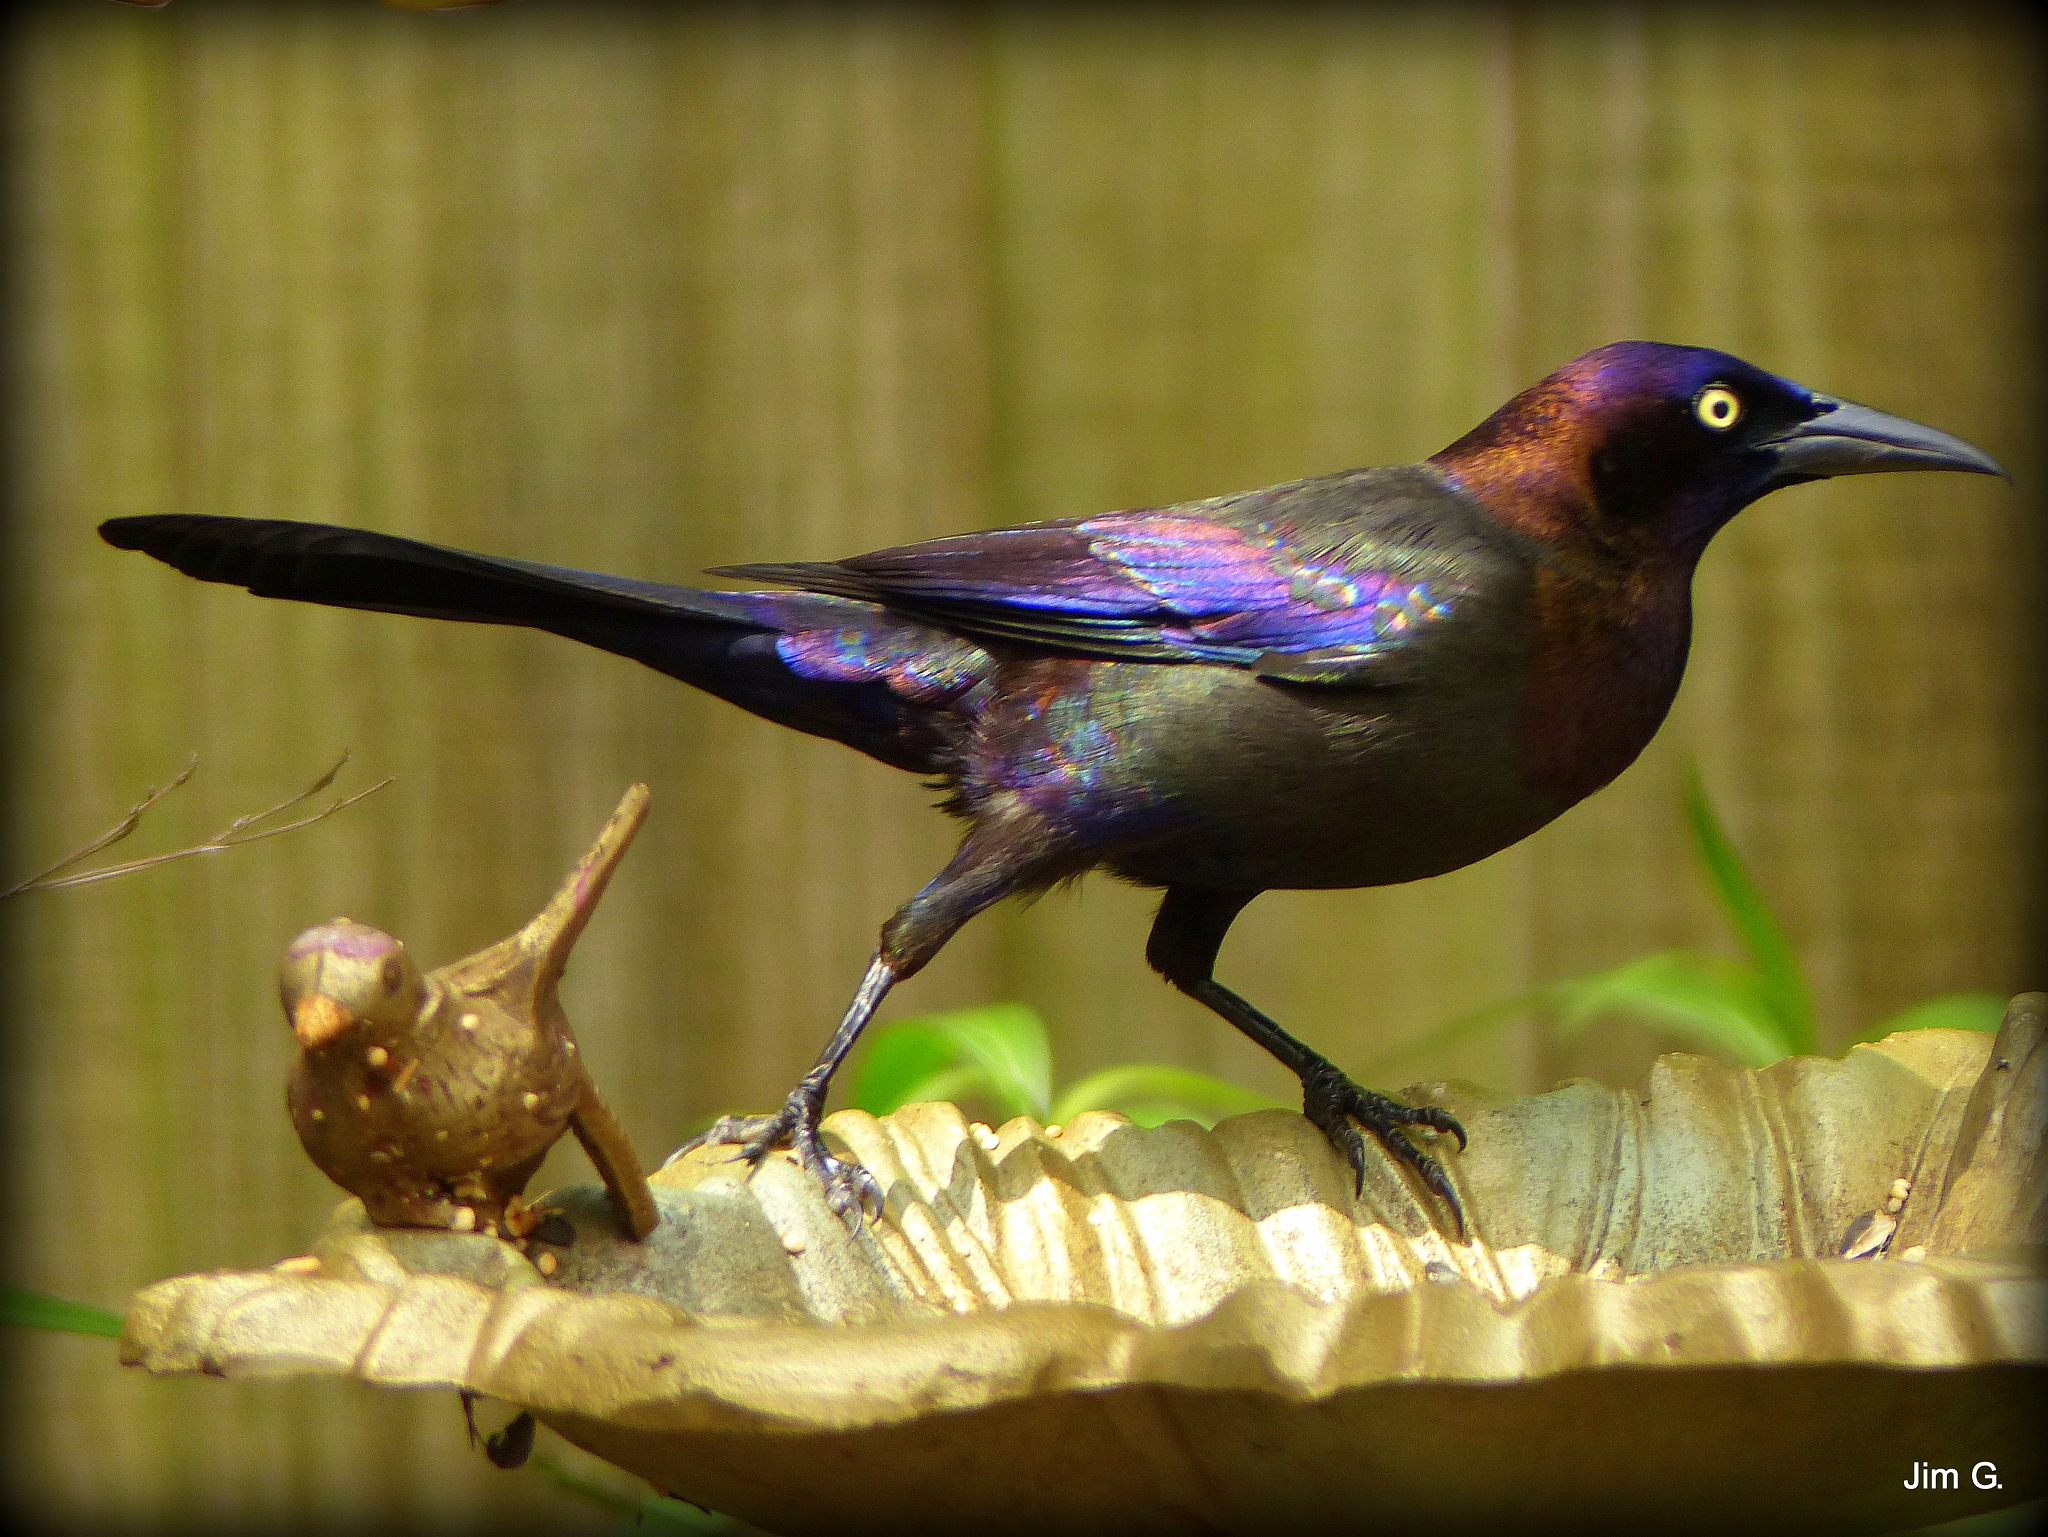 Grackle staring down a squirrel who wants the bird feeder by Jim Graham